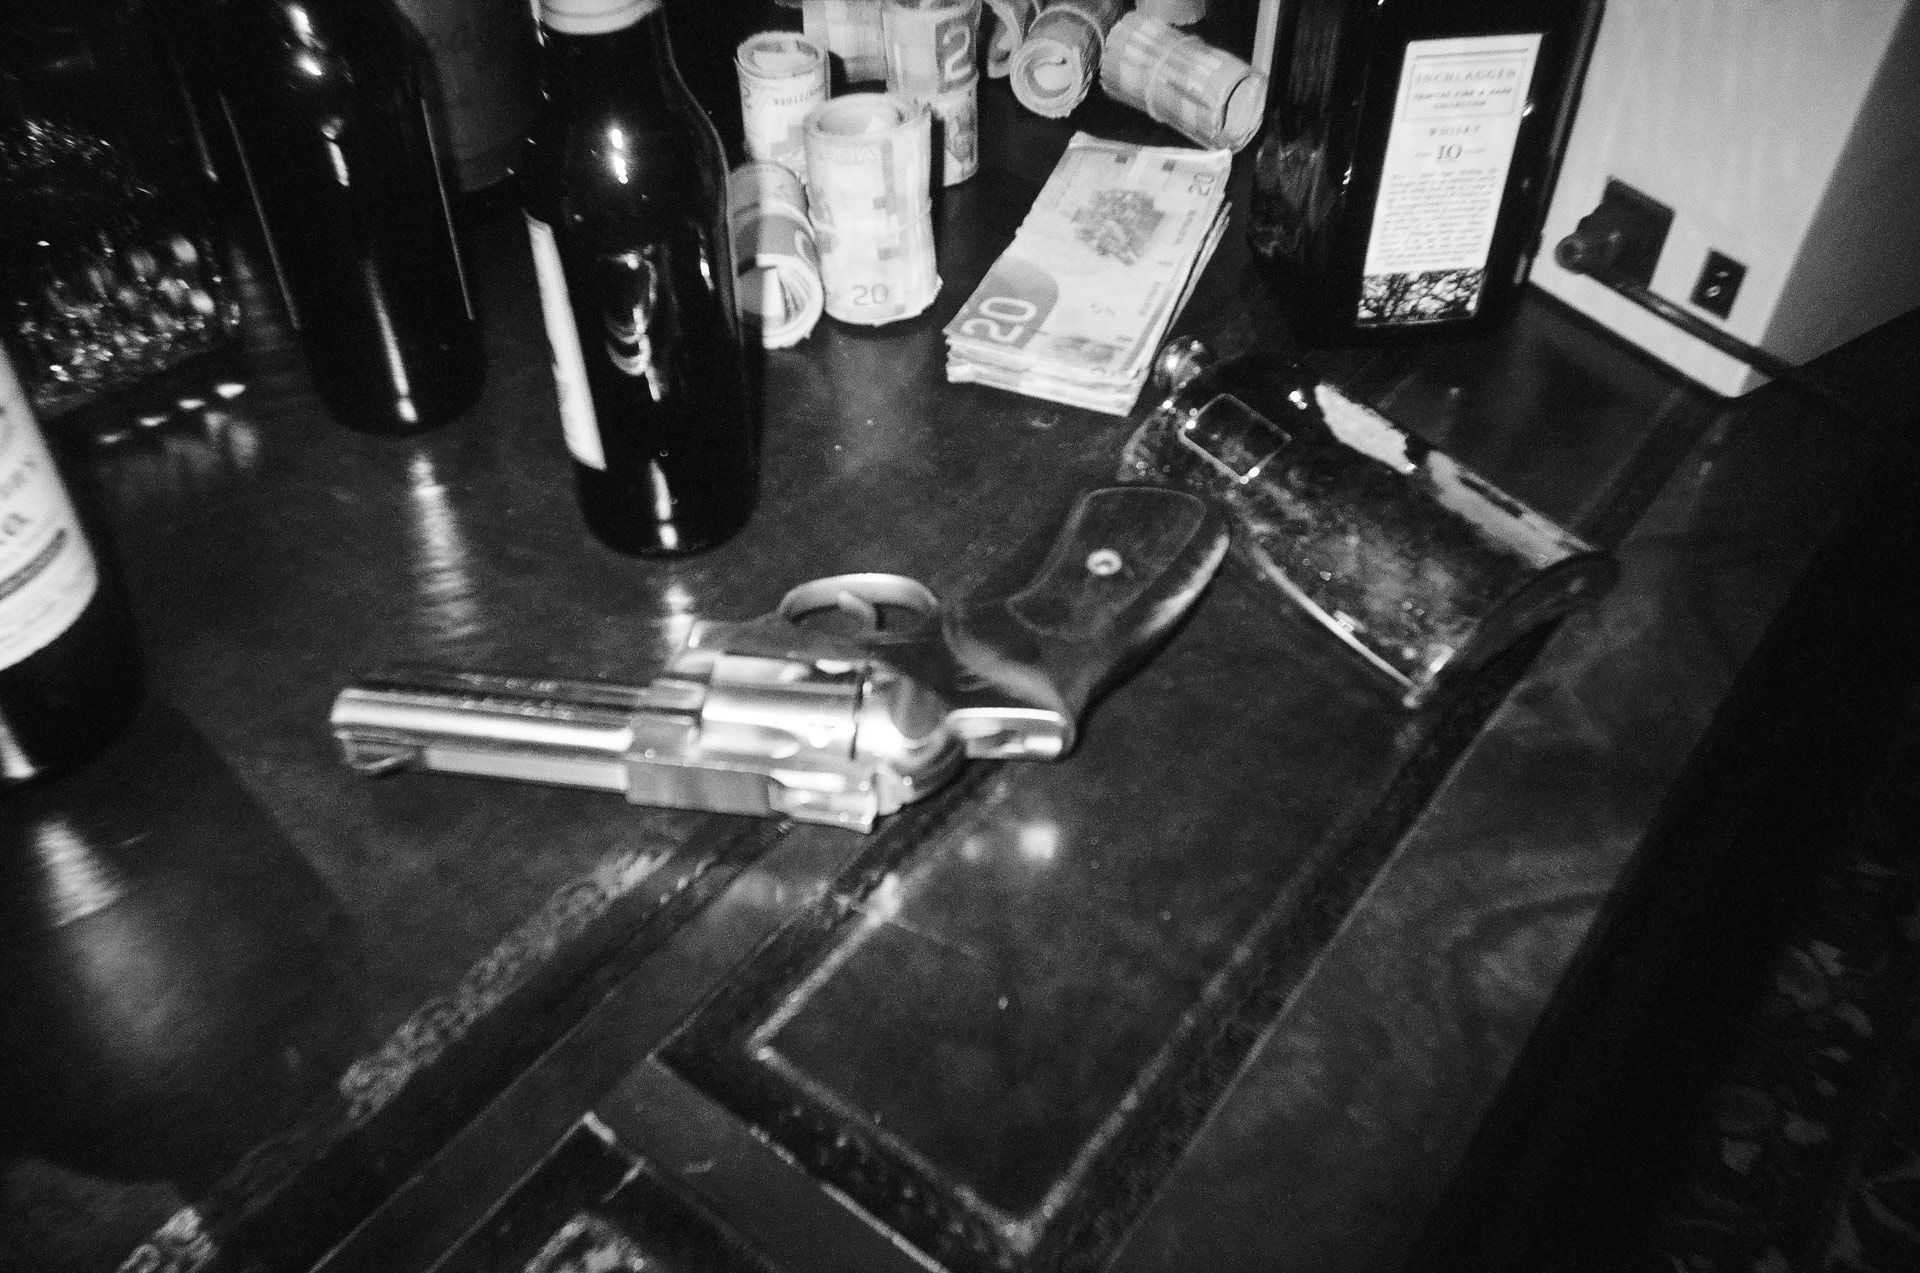 fake gun on table among empty alcohol bottles and dollar bills for rapper Souldia music video Rouge Neige filmed by Les Gamins featuring Sinik, Seth Gueko and Rick Pagano